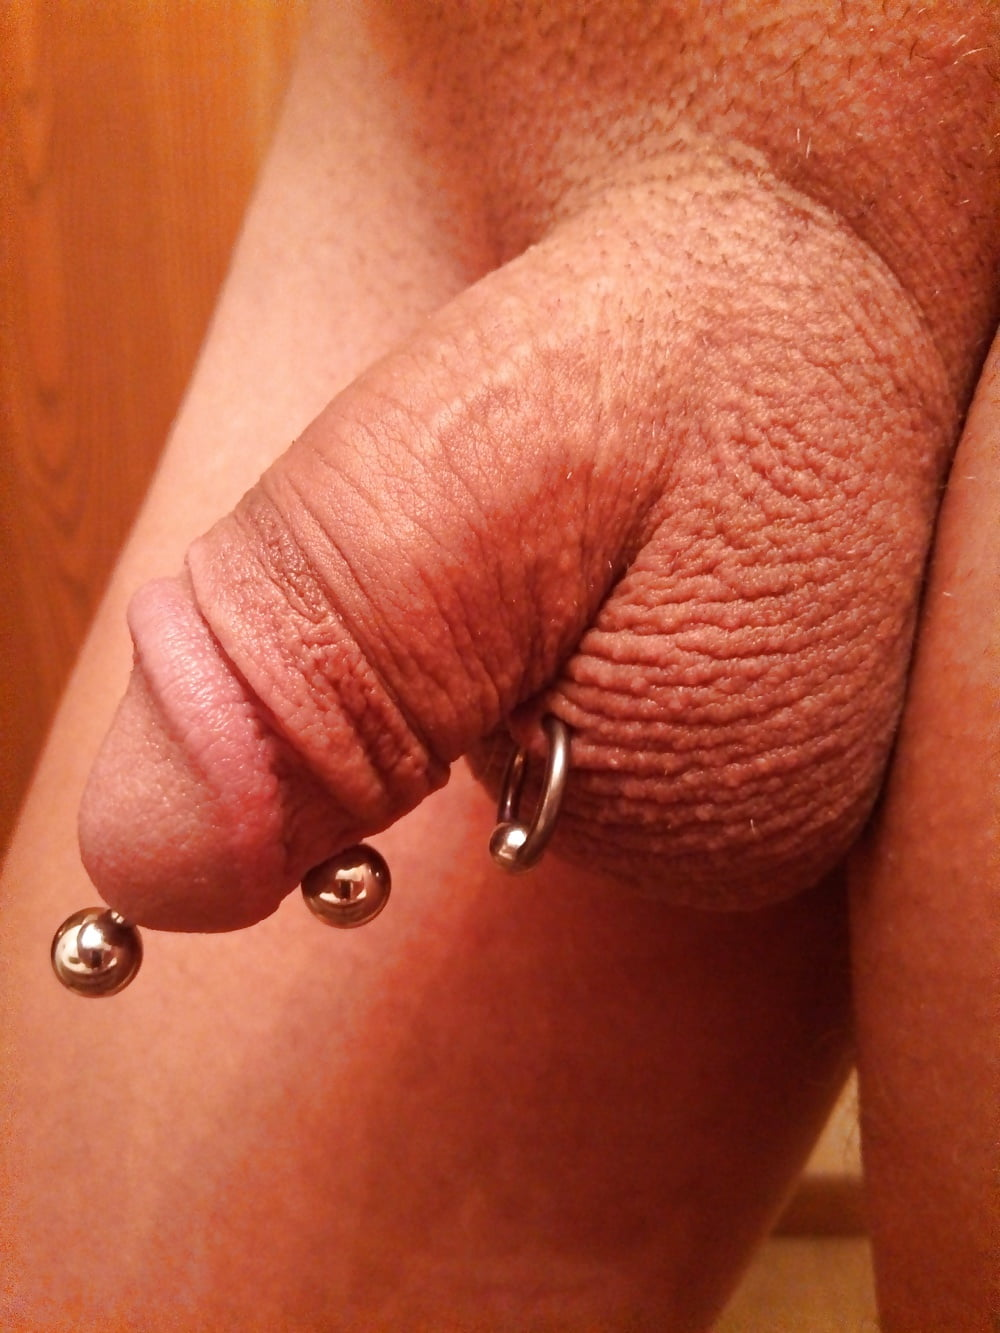 Hairy dad plays with his pierced cock